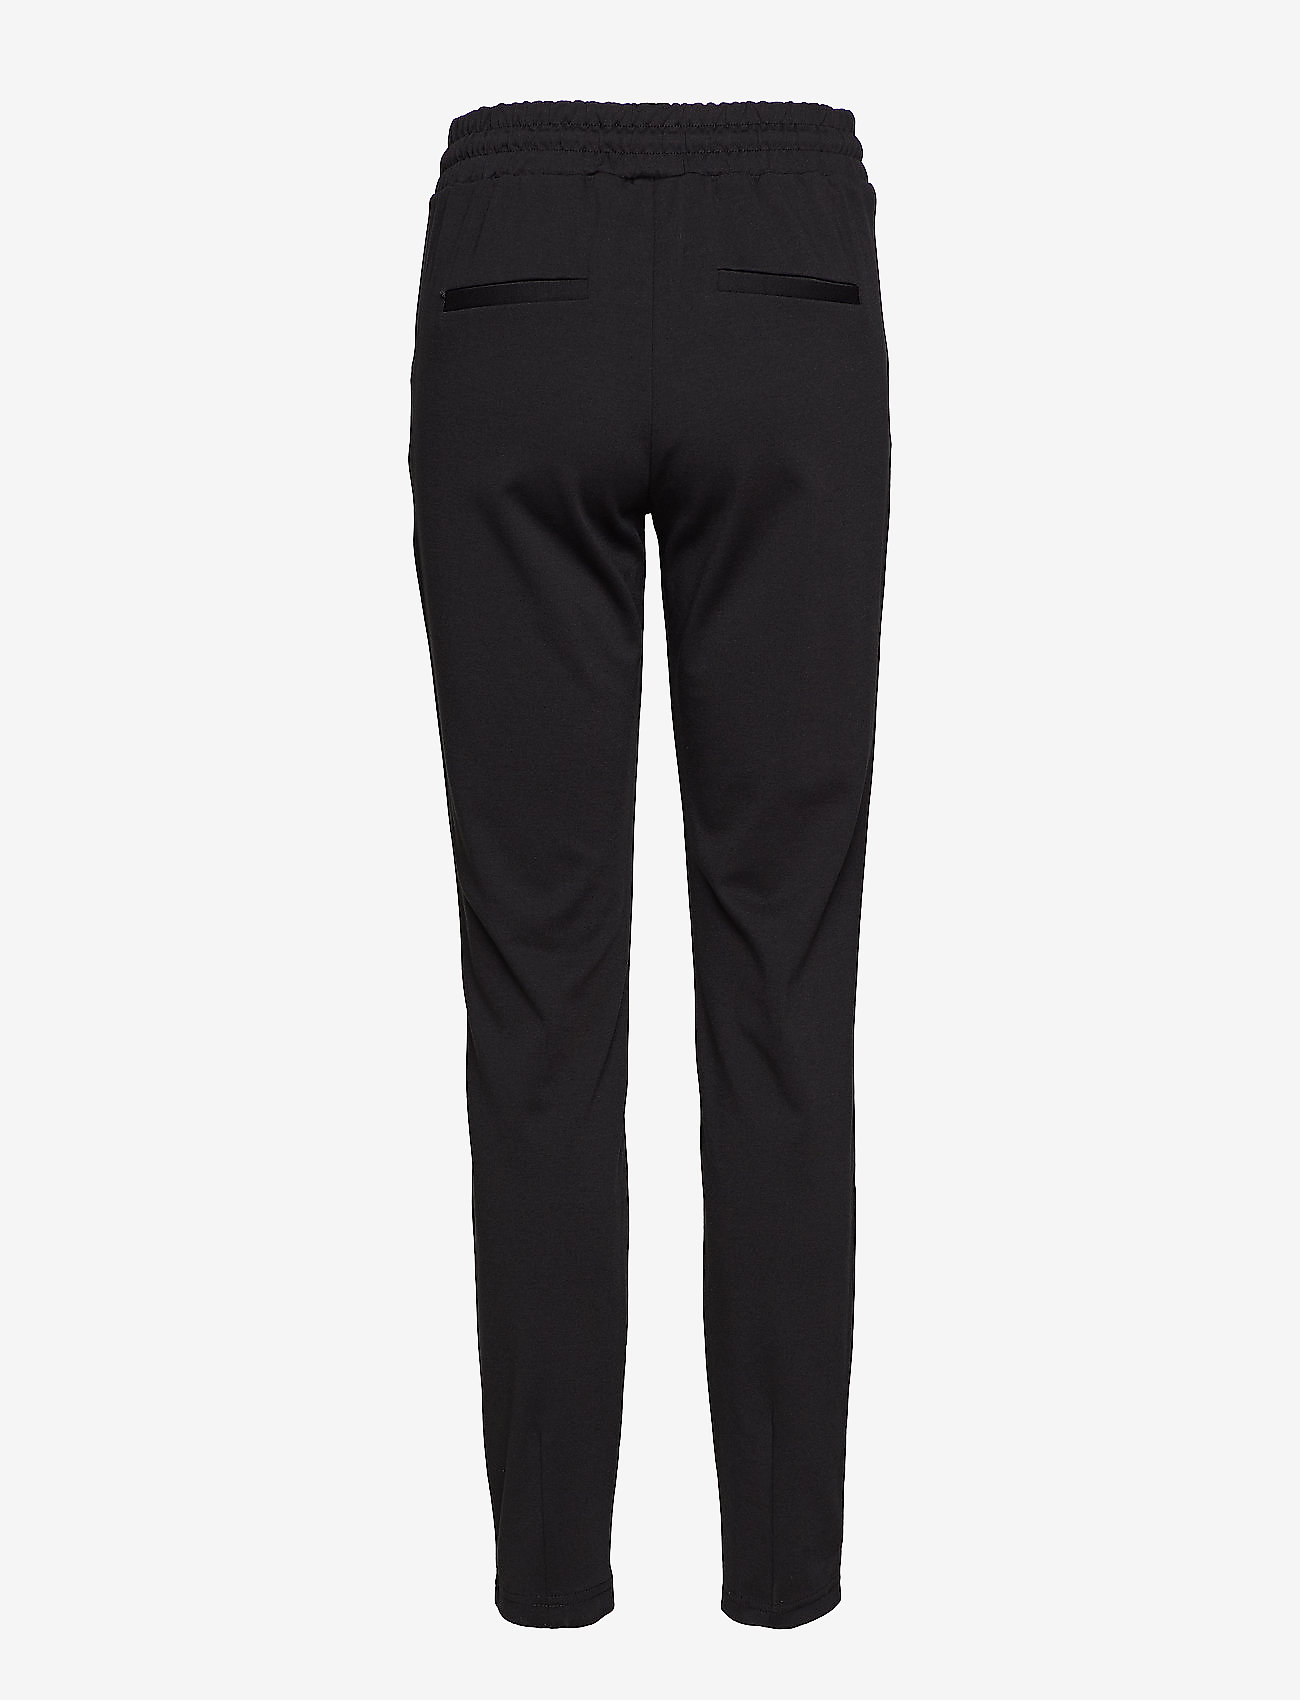 b.young - Rizetta pants 2 - Jersey - slim fit trousers - black - 1